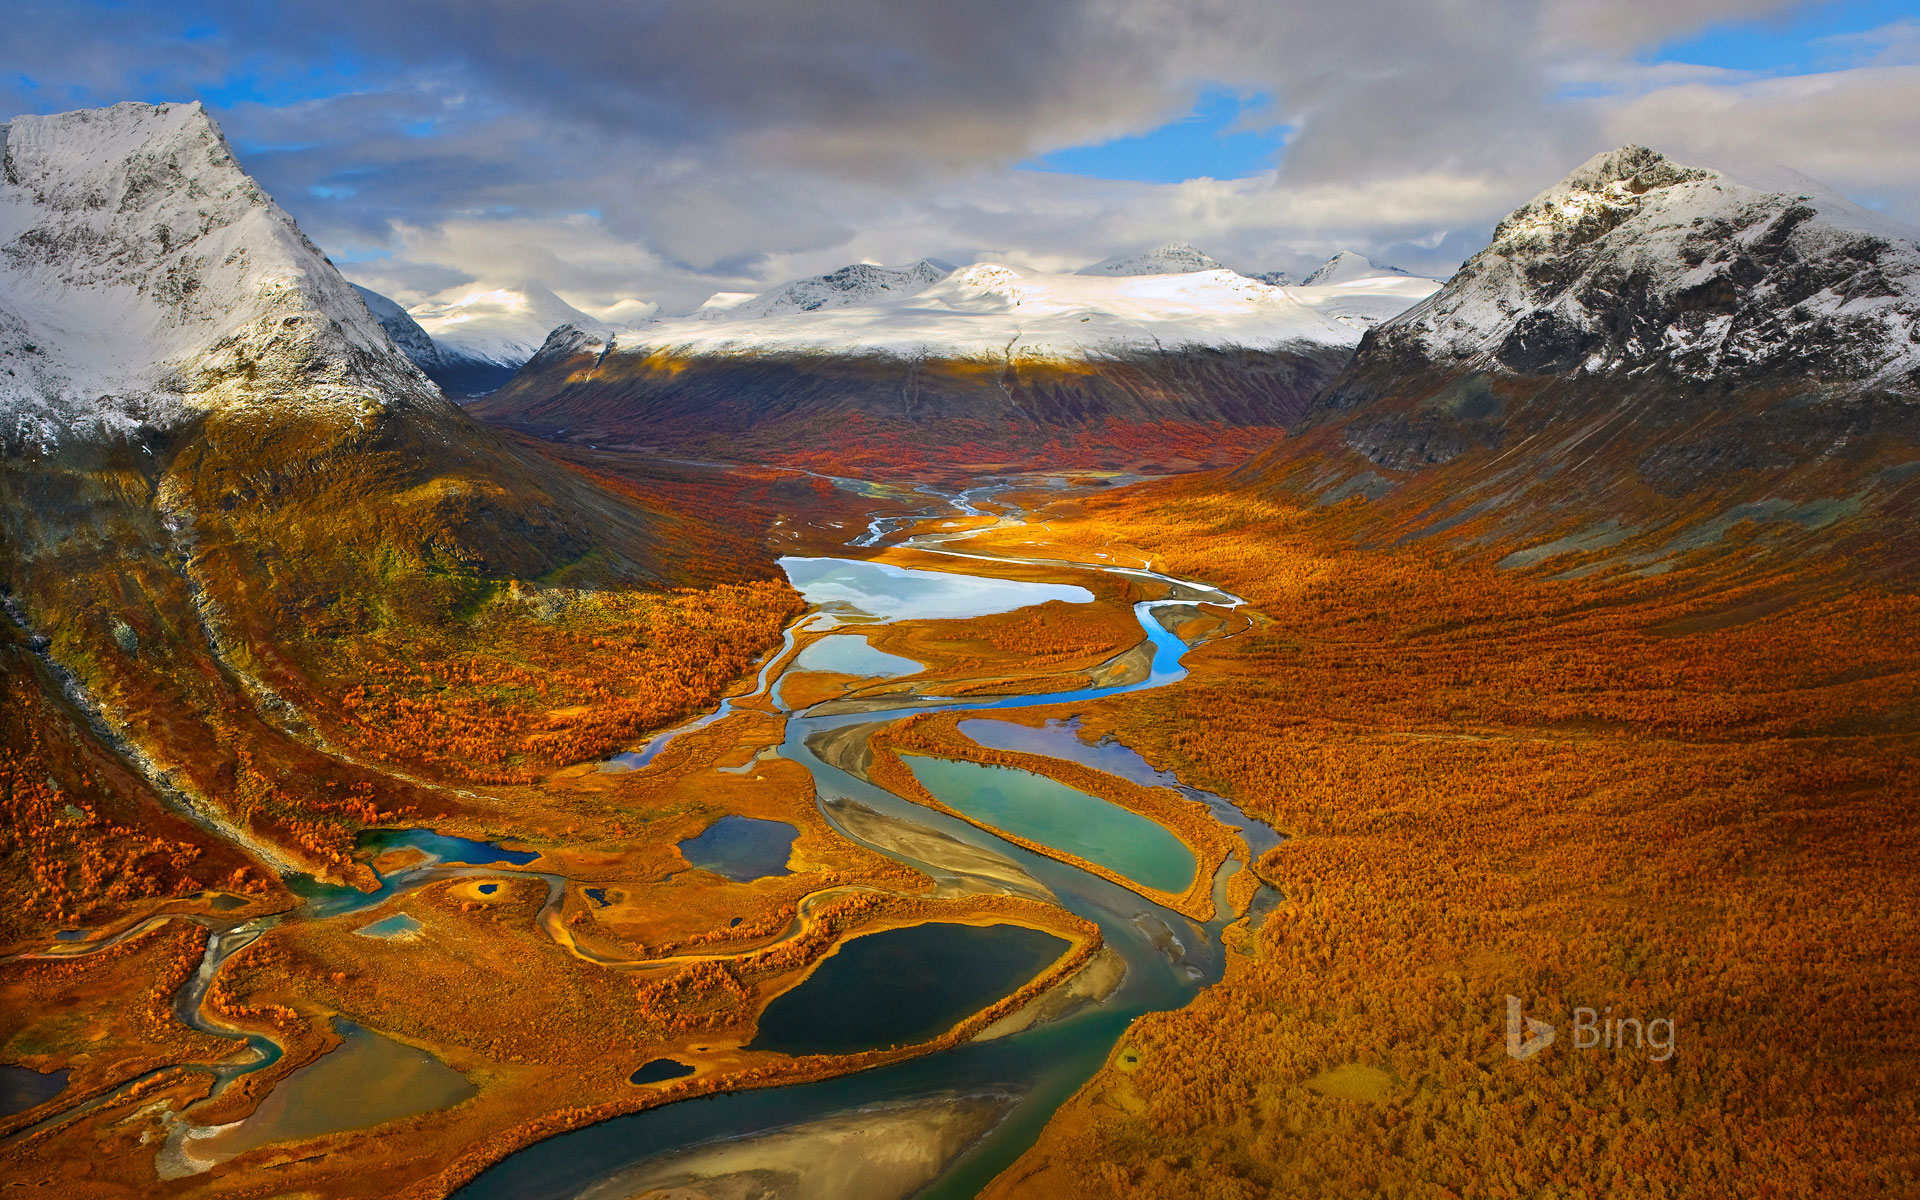 20 Bing Autumn Landscapes Images Wallpapers